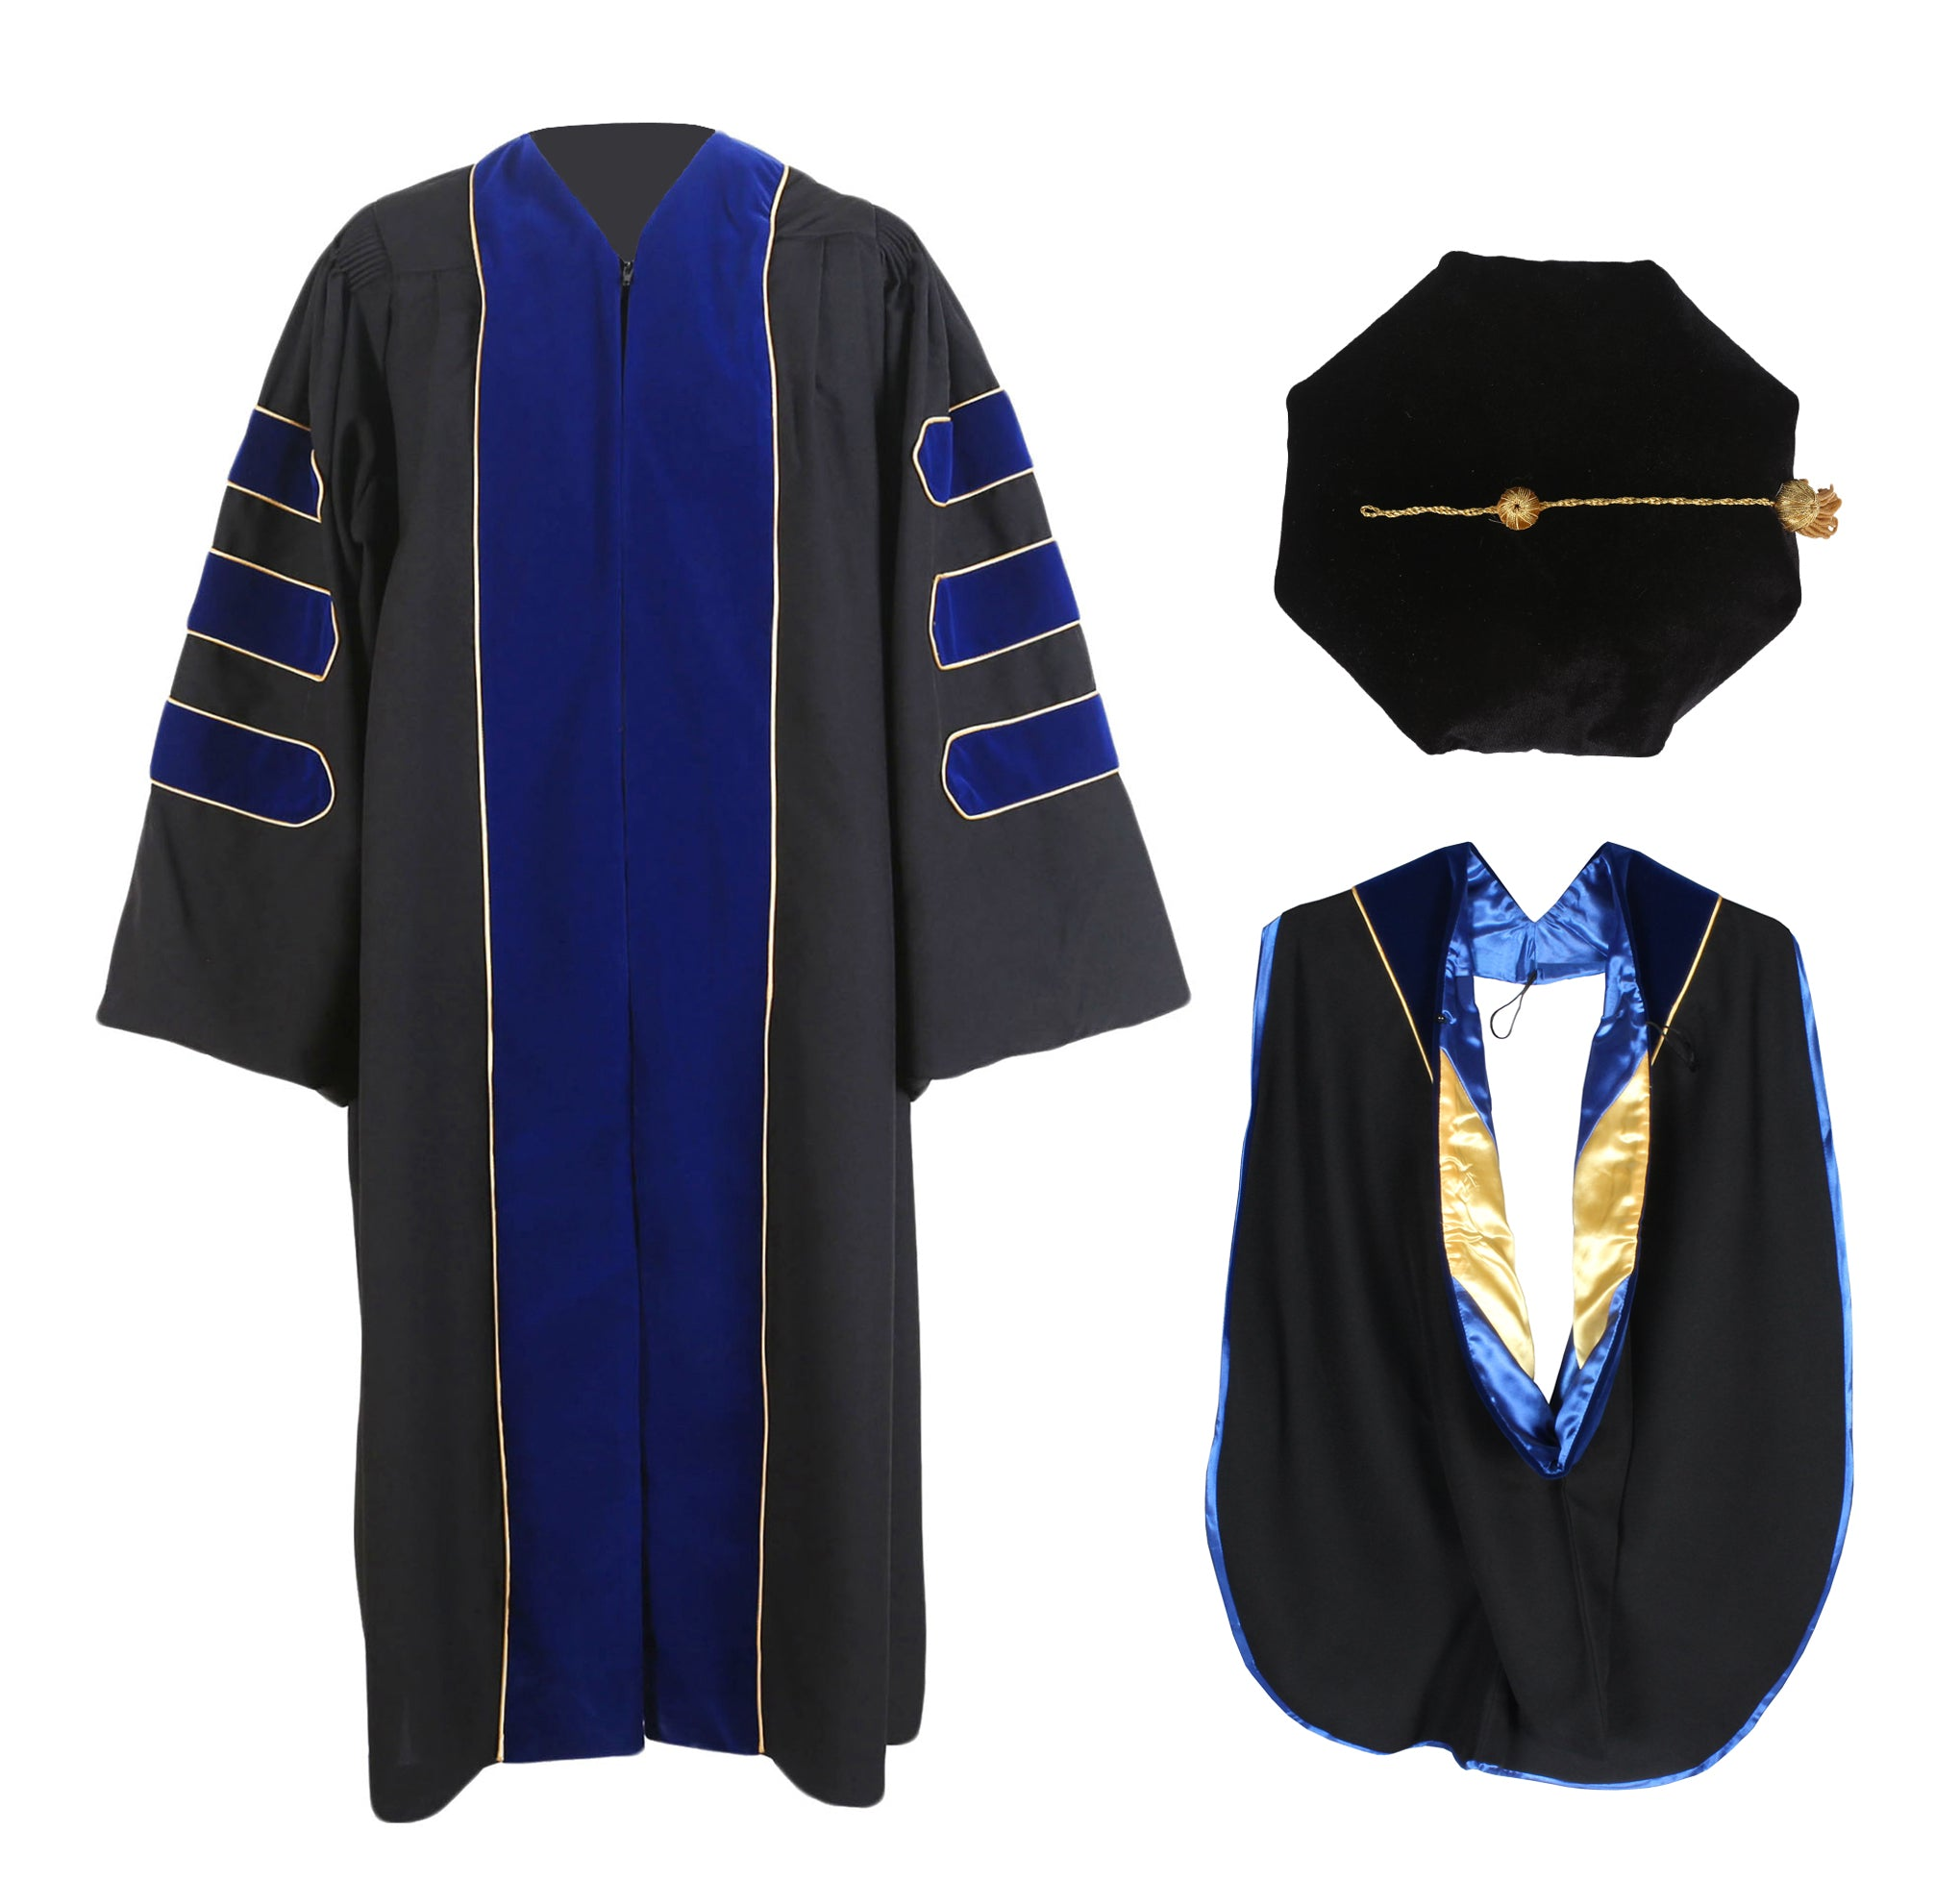 Deluxe Doctoral Gown,Hood and 8 sides Tam Package Customization